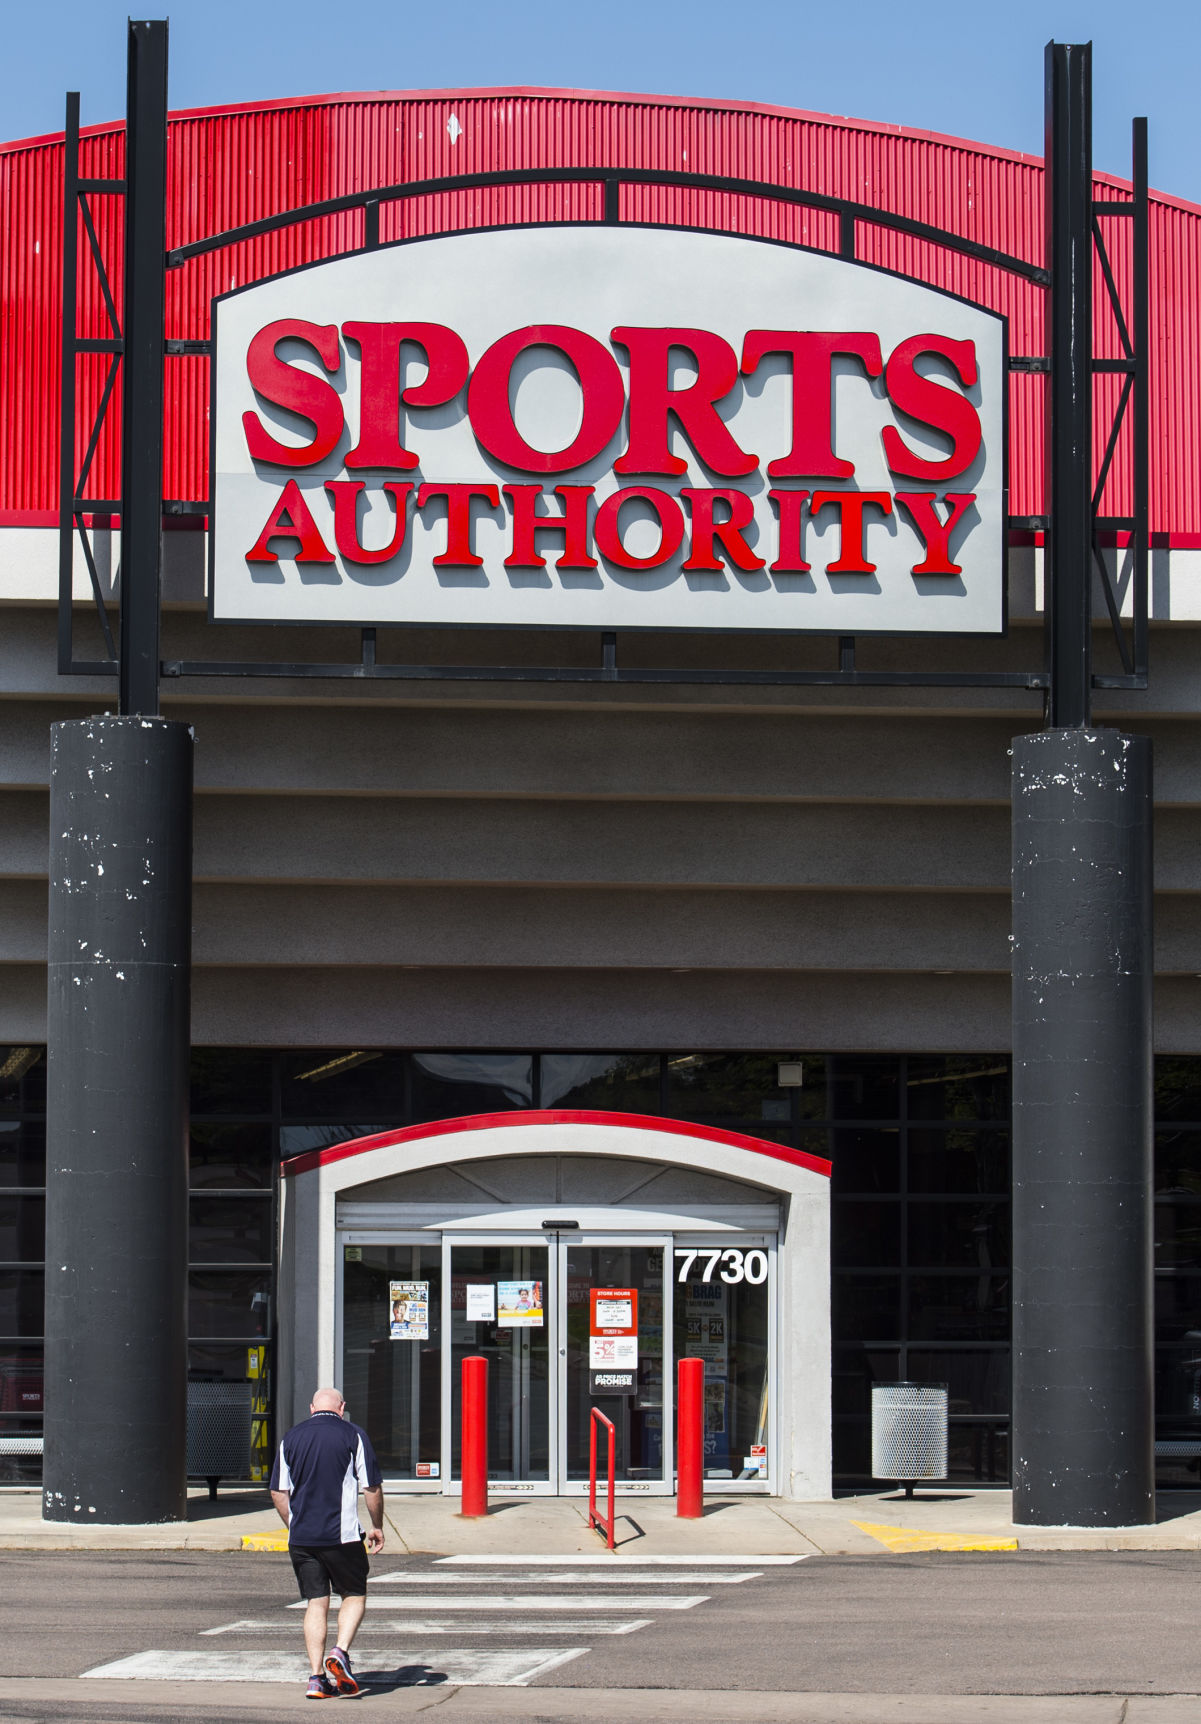 Sports Authoritys Going-Out-of-Business Sale Starts This Week